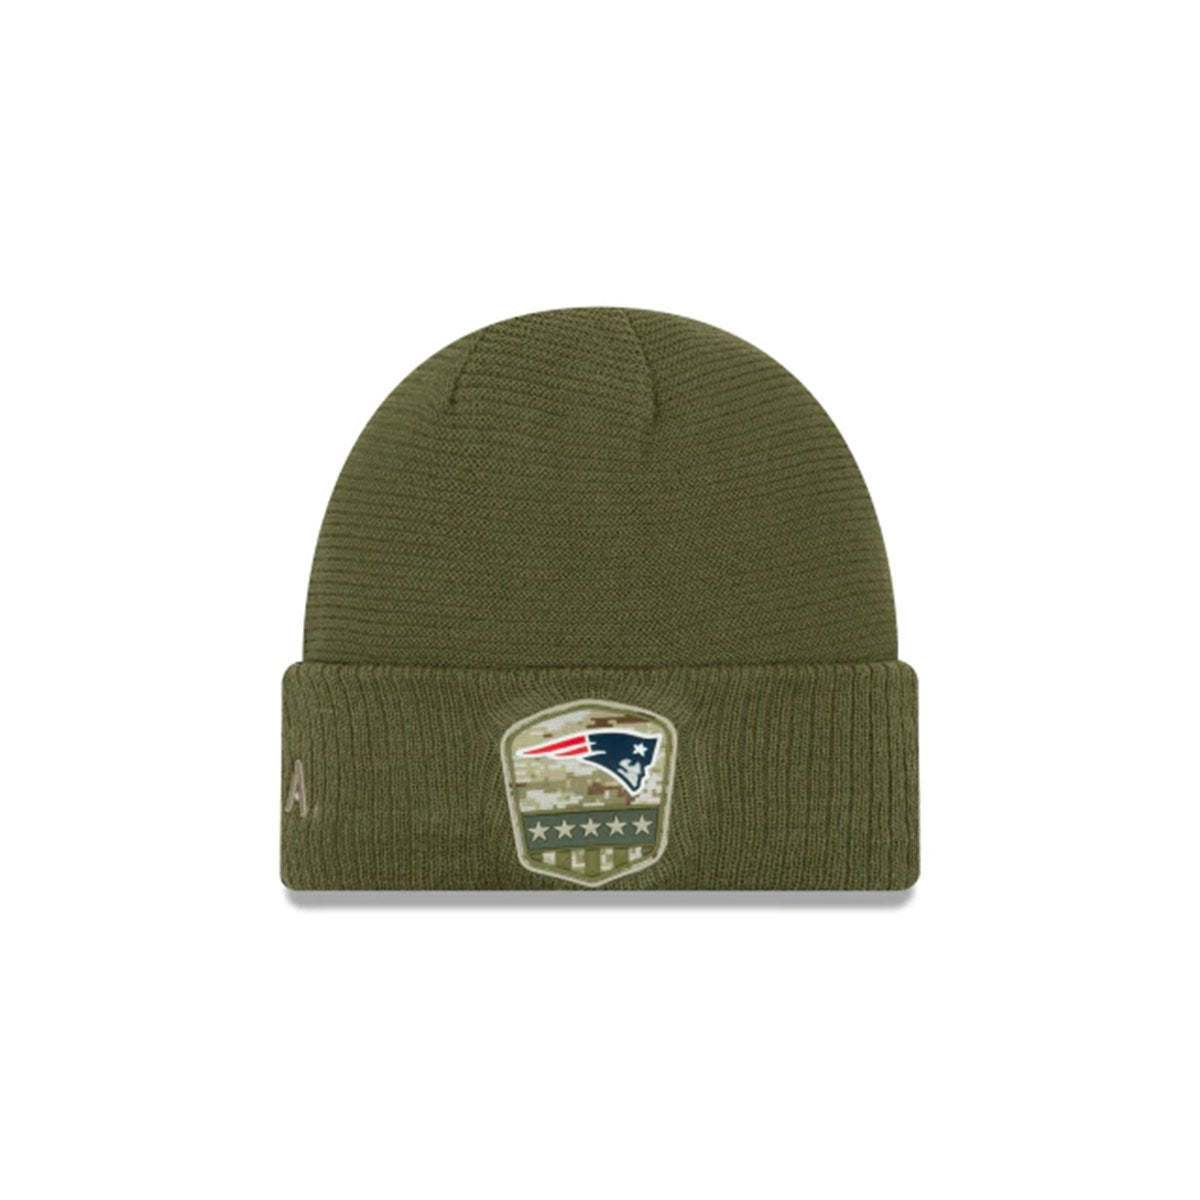 NEW ENGLAND PATRIOTS SALUTE TO SERVICE CUFF KNIT GREEN/BLUE